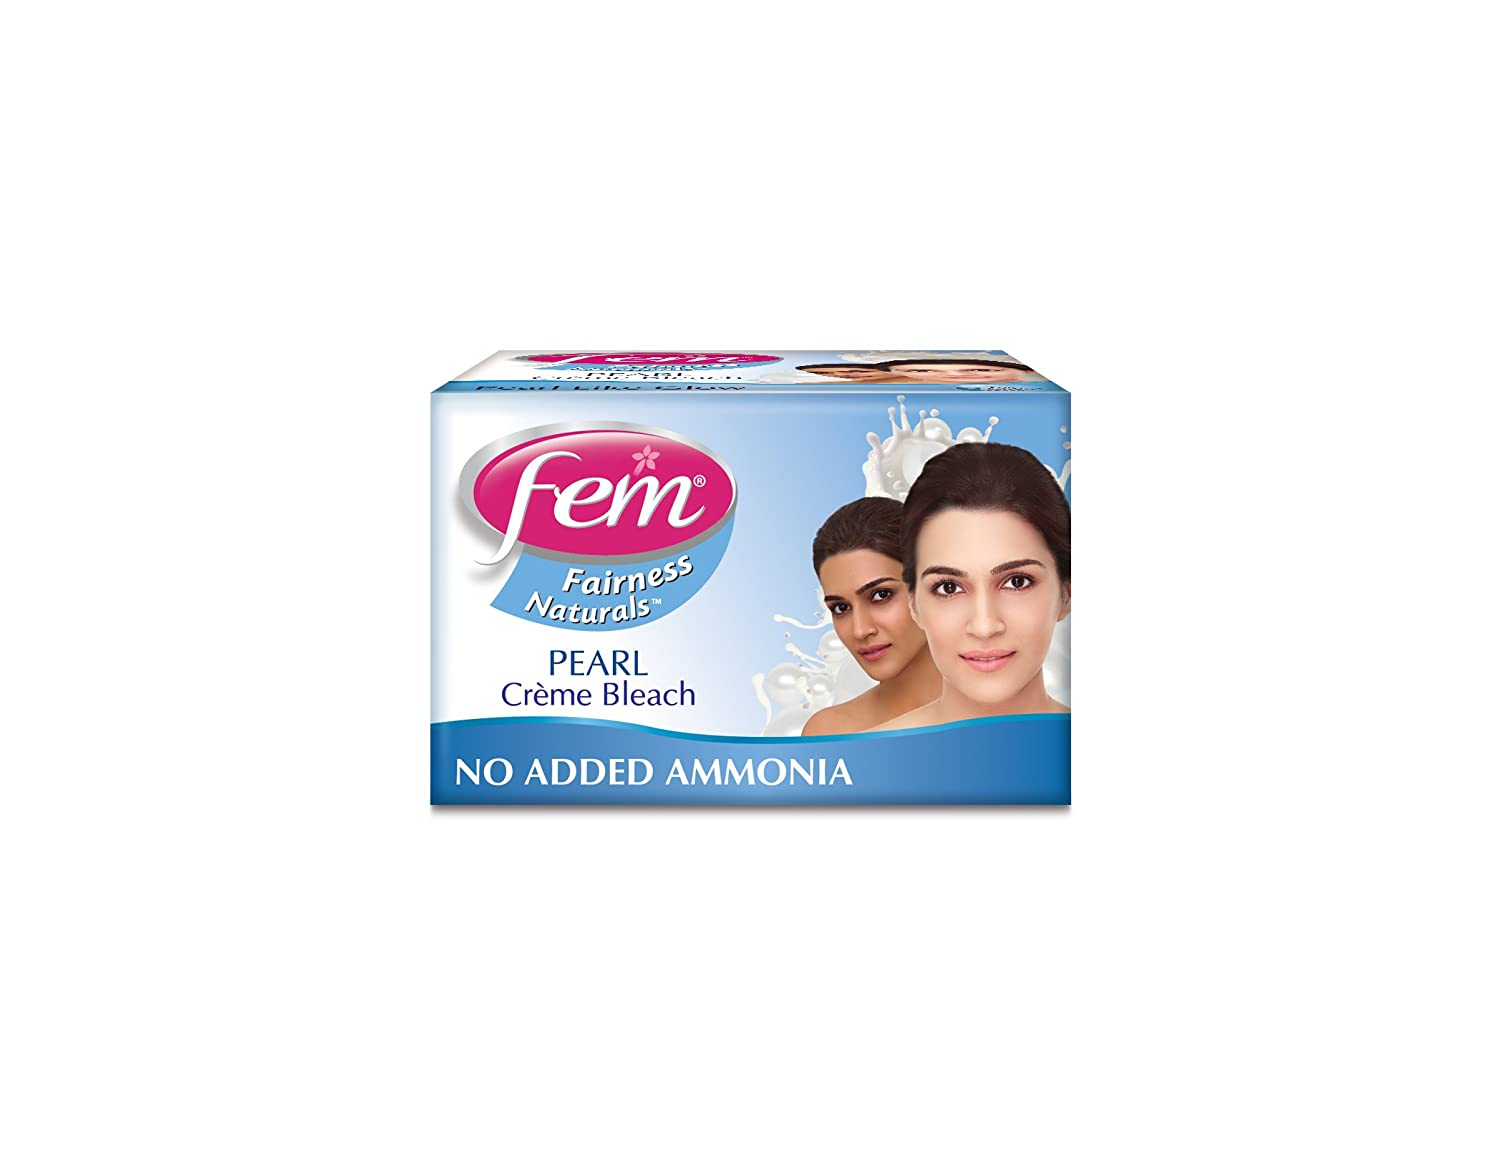 Fem Pearl Fairness Creme Bleach with Pearl & Milk 8g - India FM044008